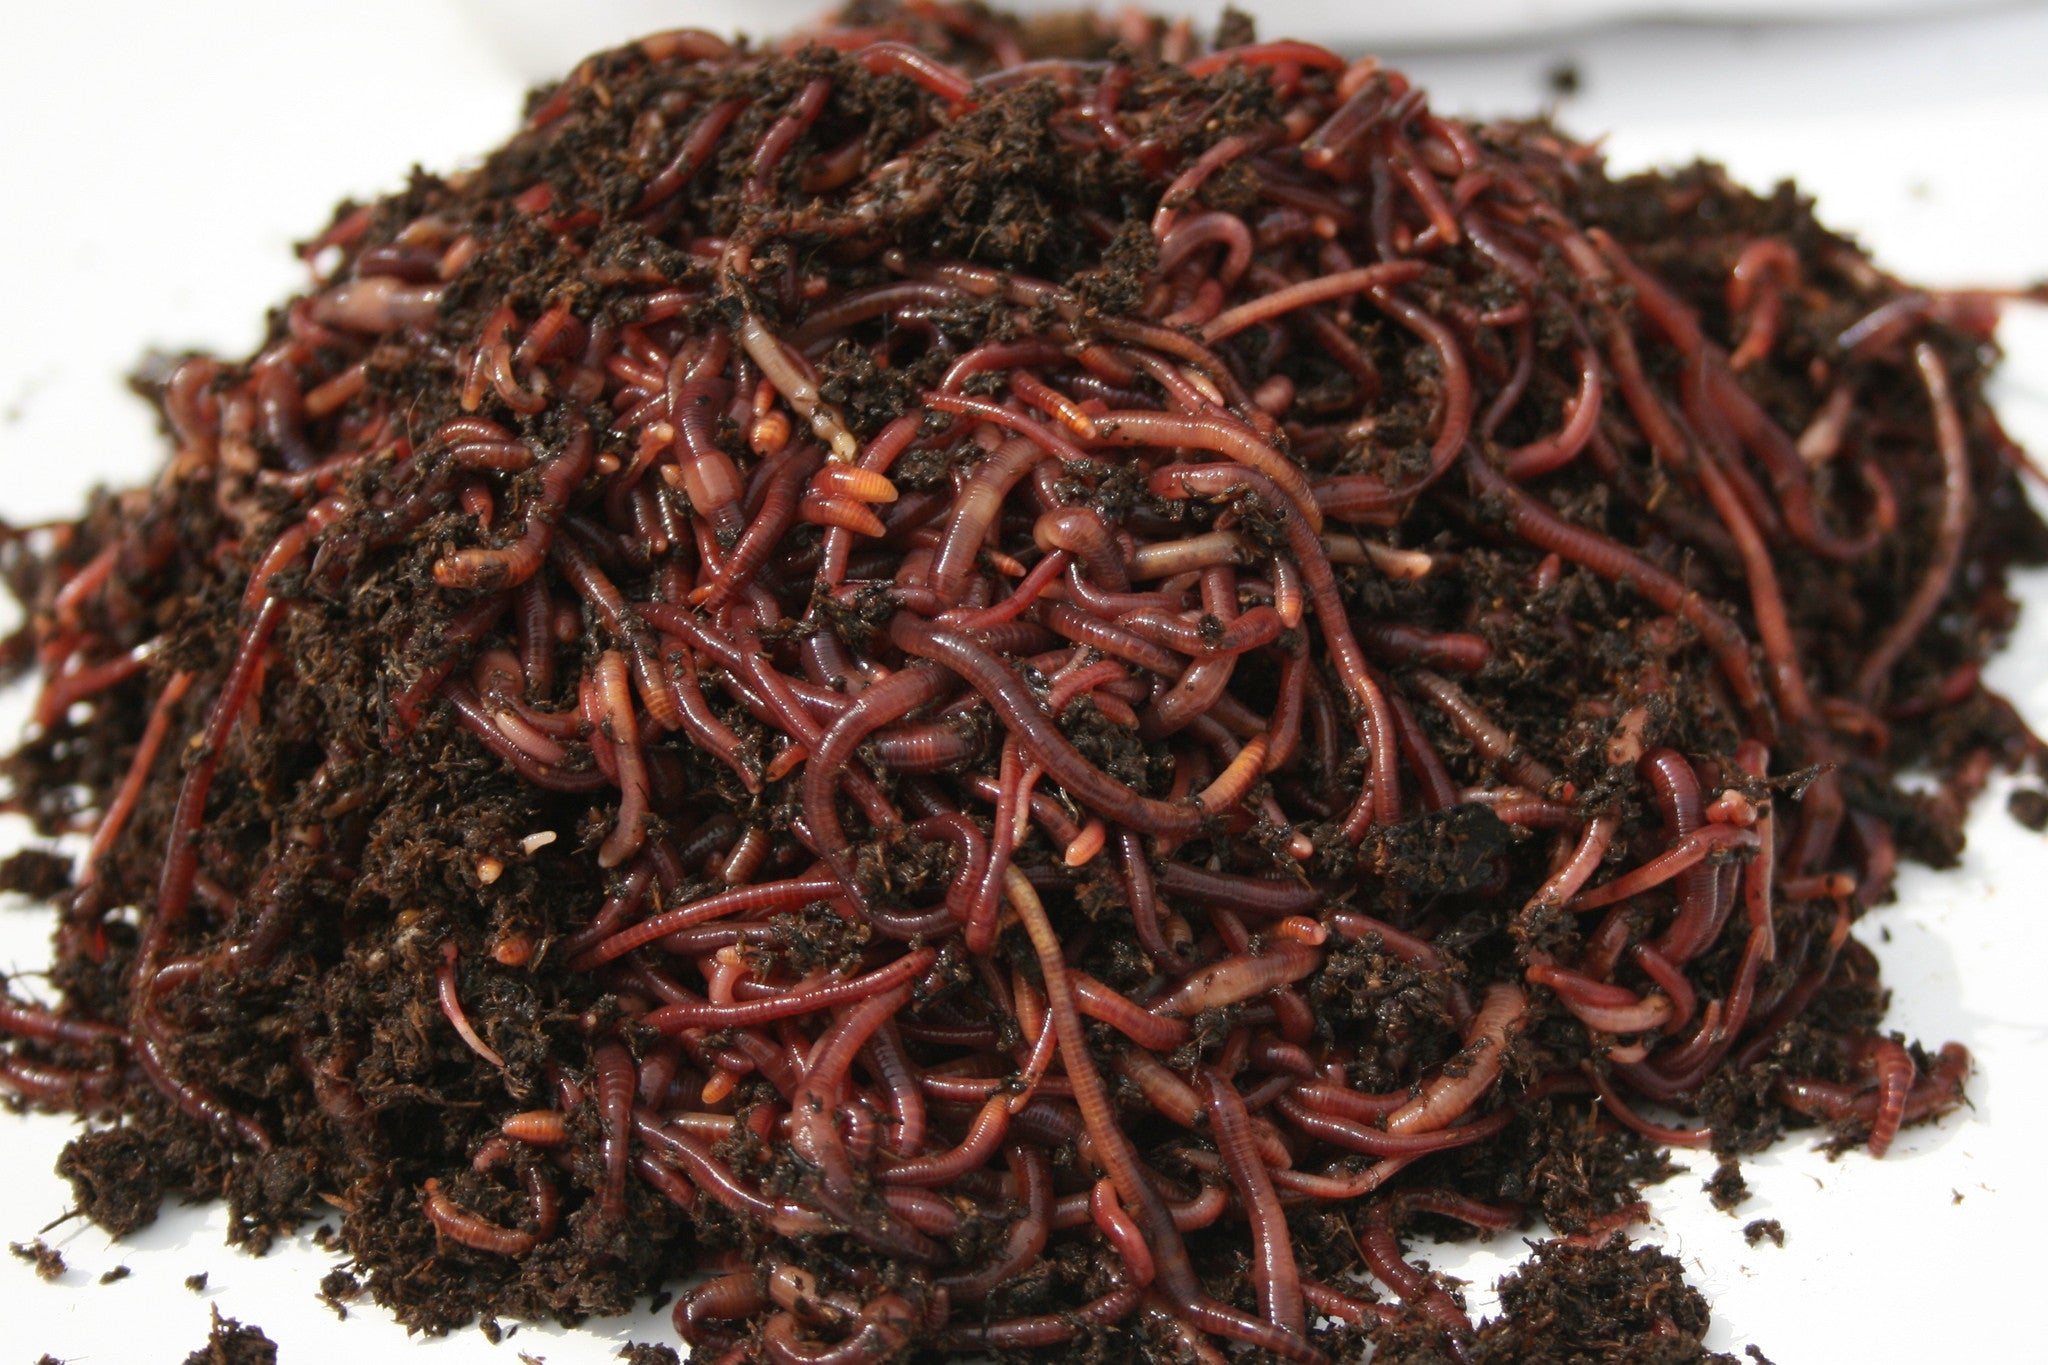 2000 Composting Worms